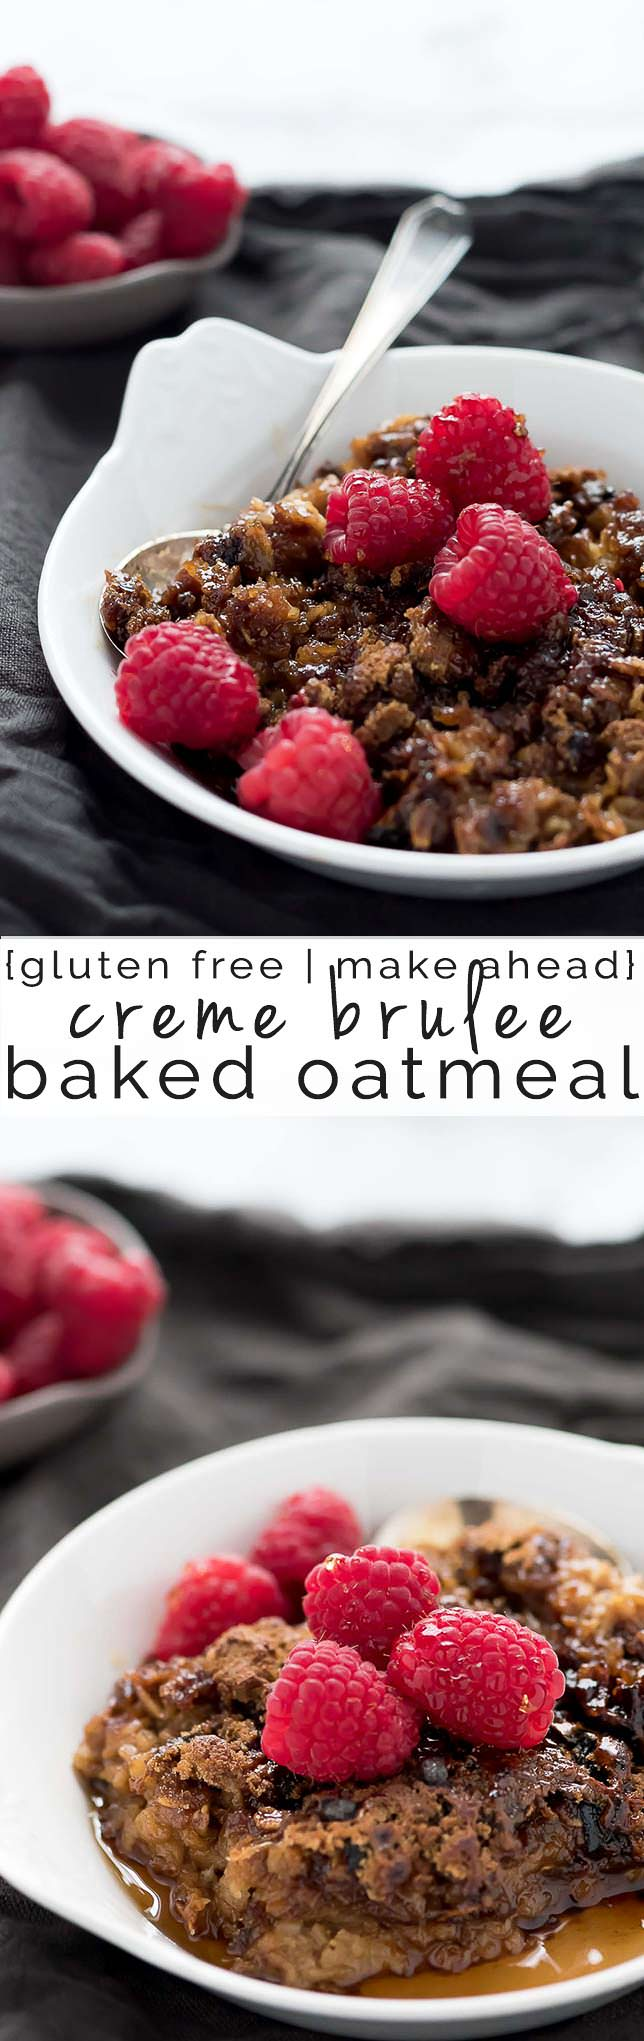 Healthy Baked Oatmeal Recipe, Casserole, Clean, Easy, Breakfast, Berry, Protein, Gluten Free, Simple, Weight Loss, 21 Day Fix, No Eggs